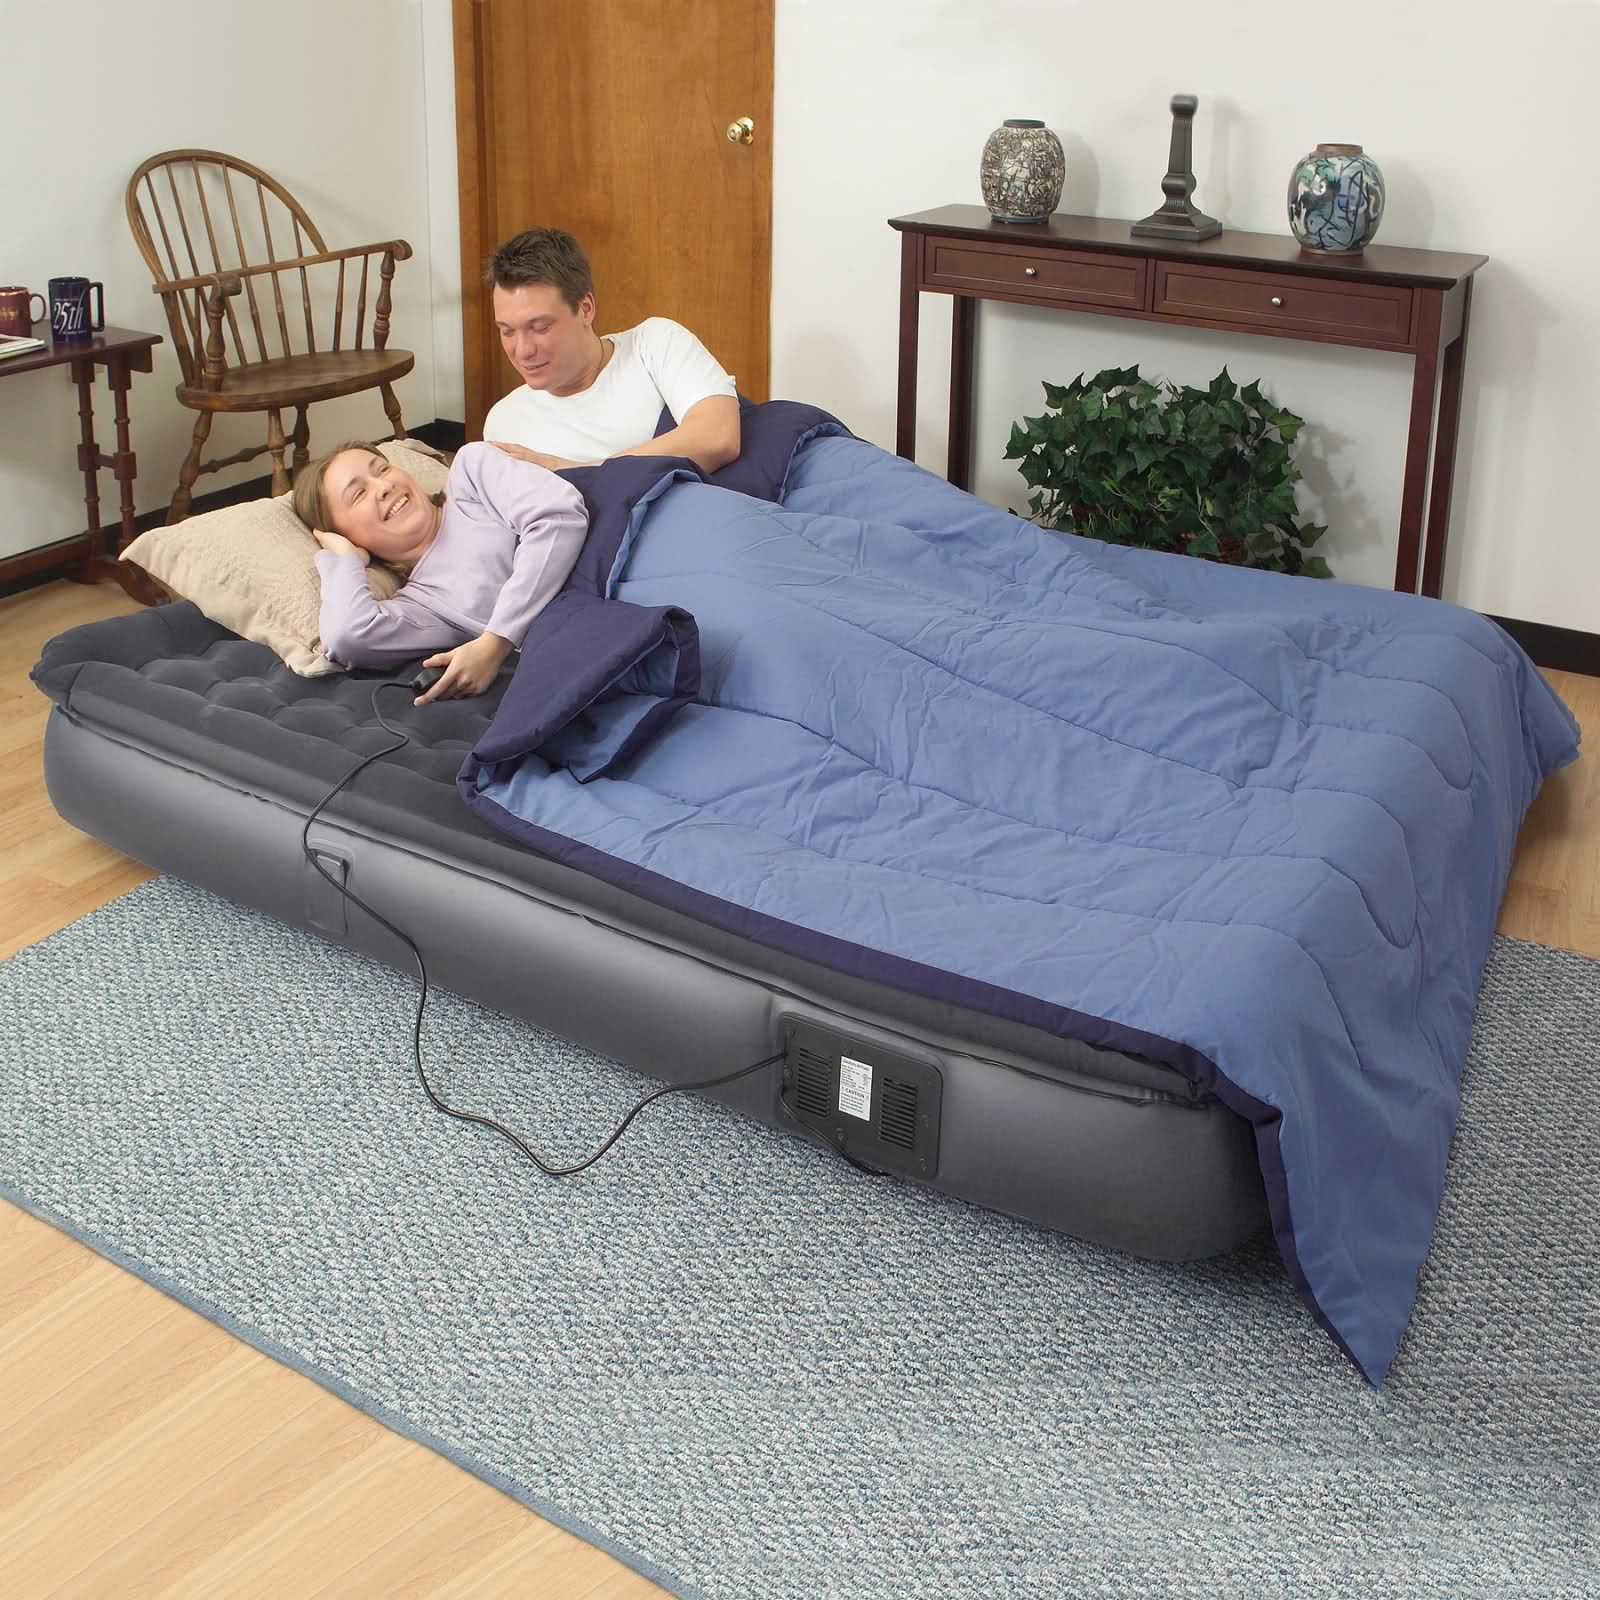 Easy Riser Queen Size Pillowtop Air Bed W Remote Grey